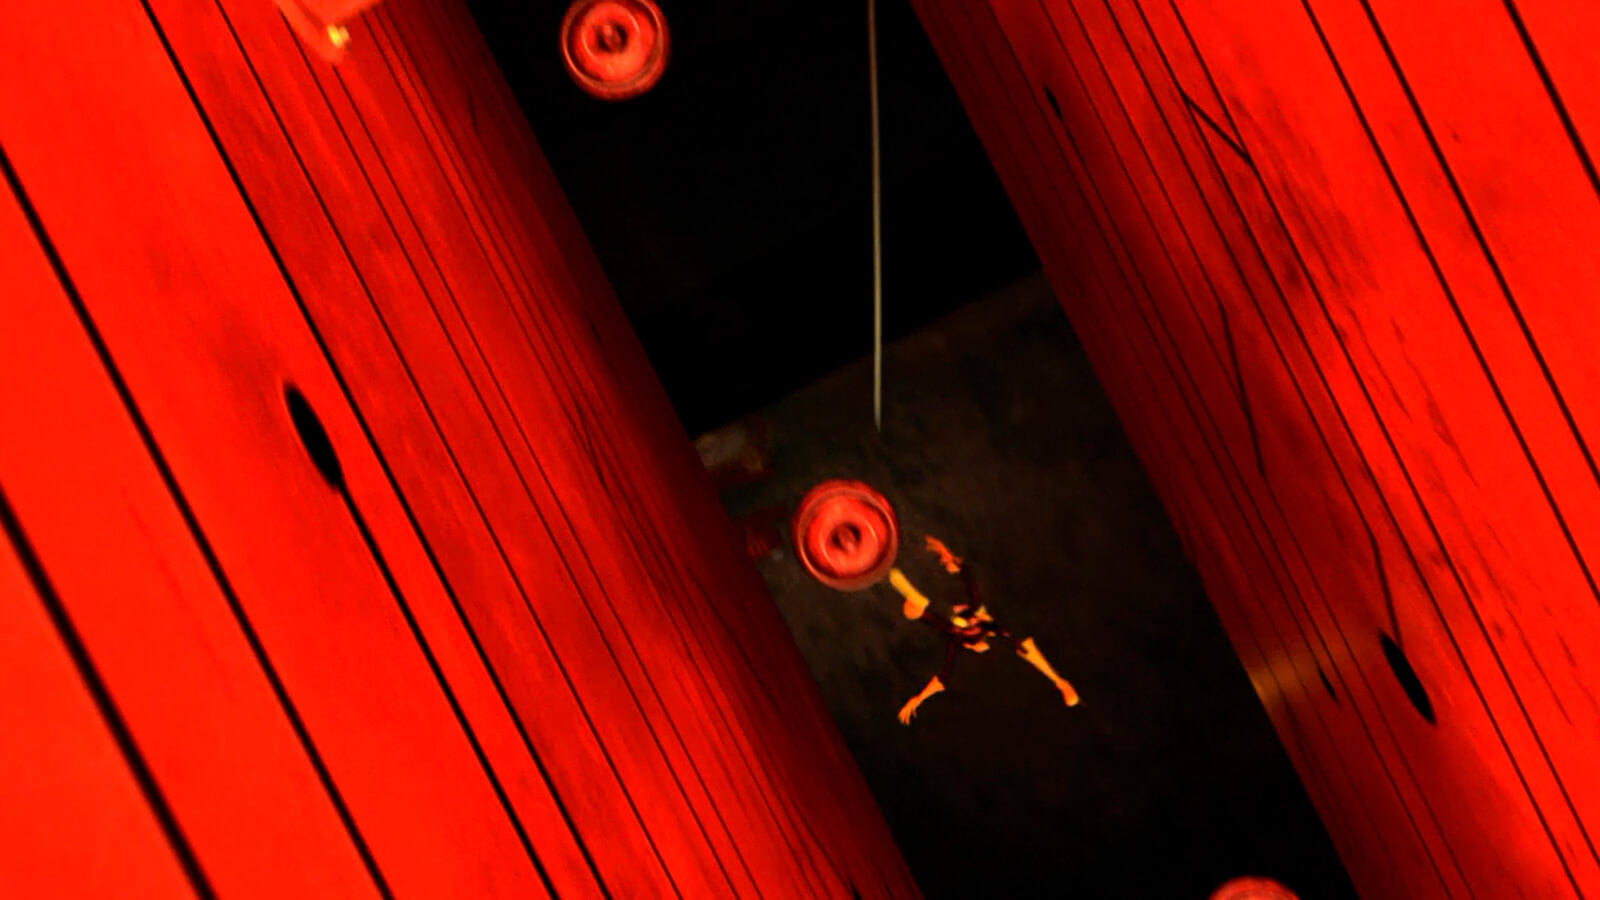 A man falls through a long, narrow pit flanked by glowing red walls